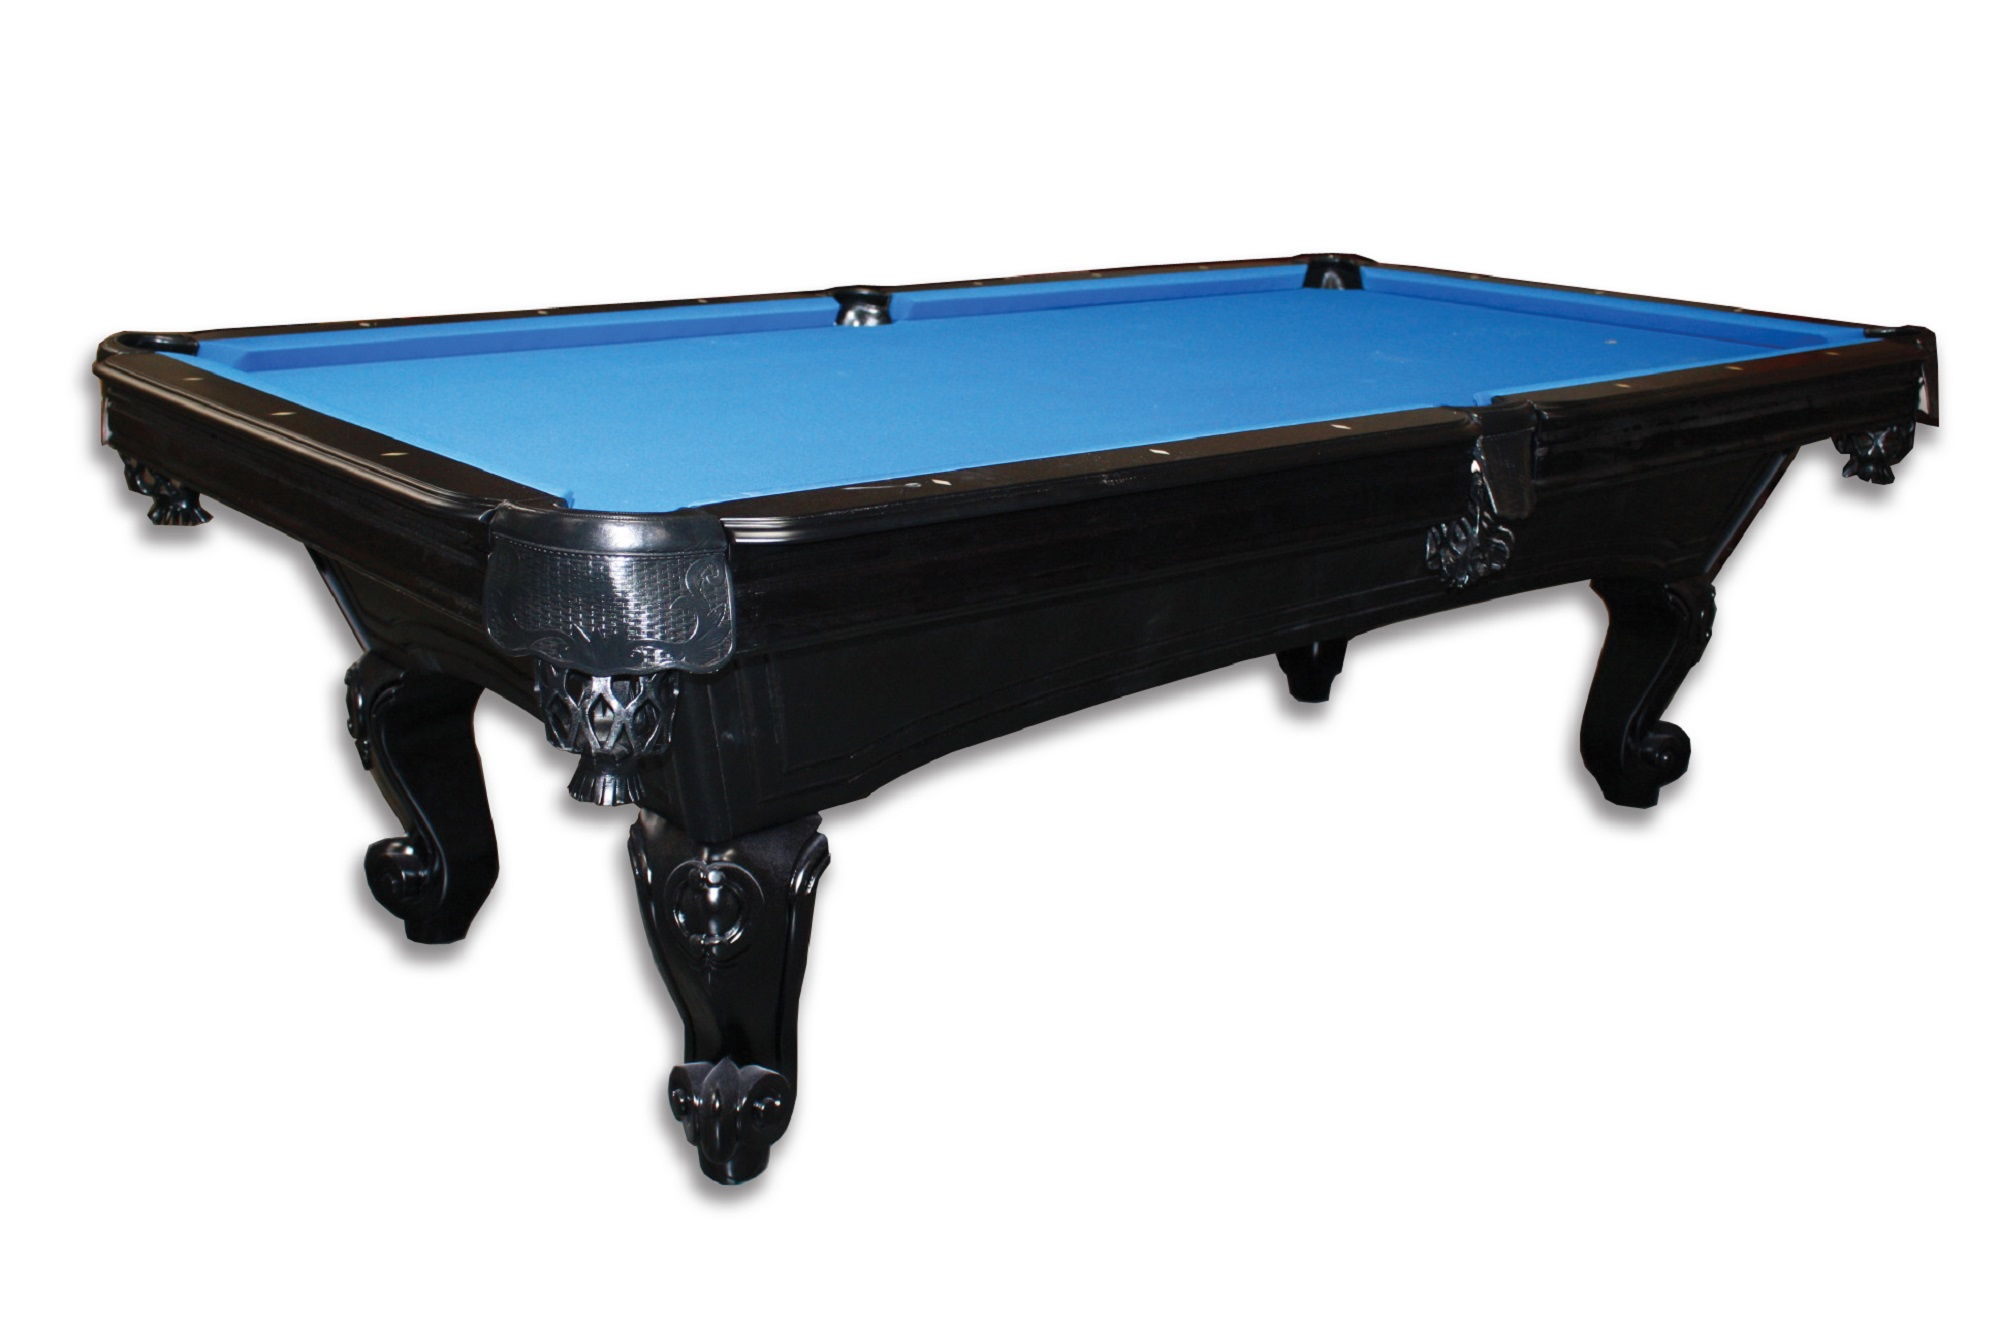 Empire USA - Nearest pool table